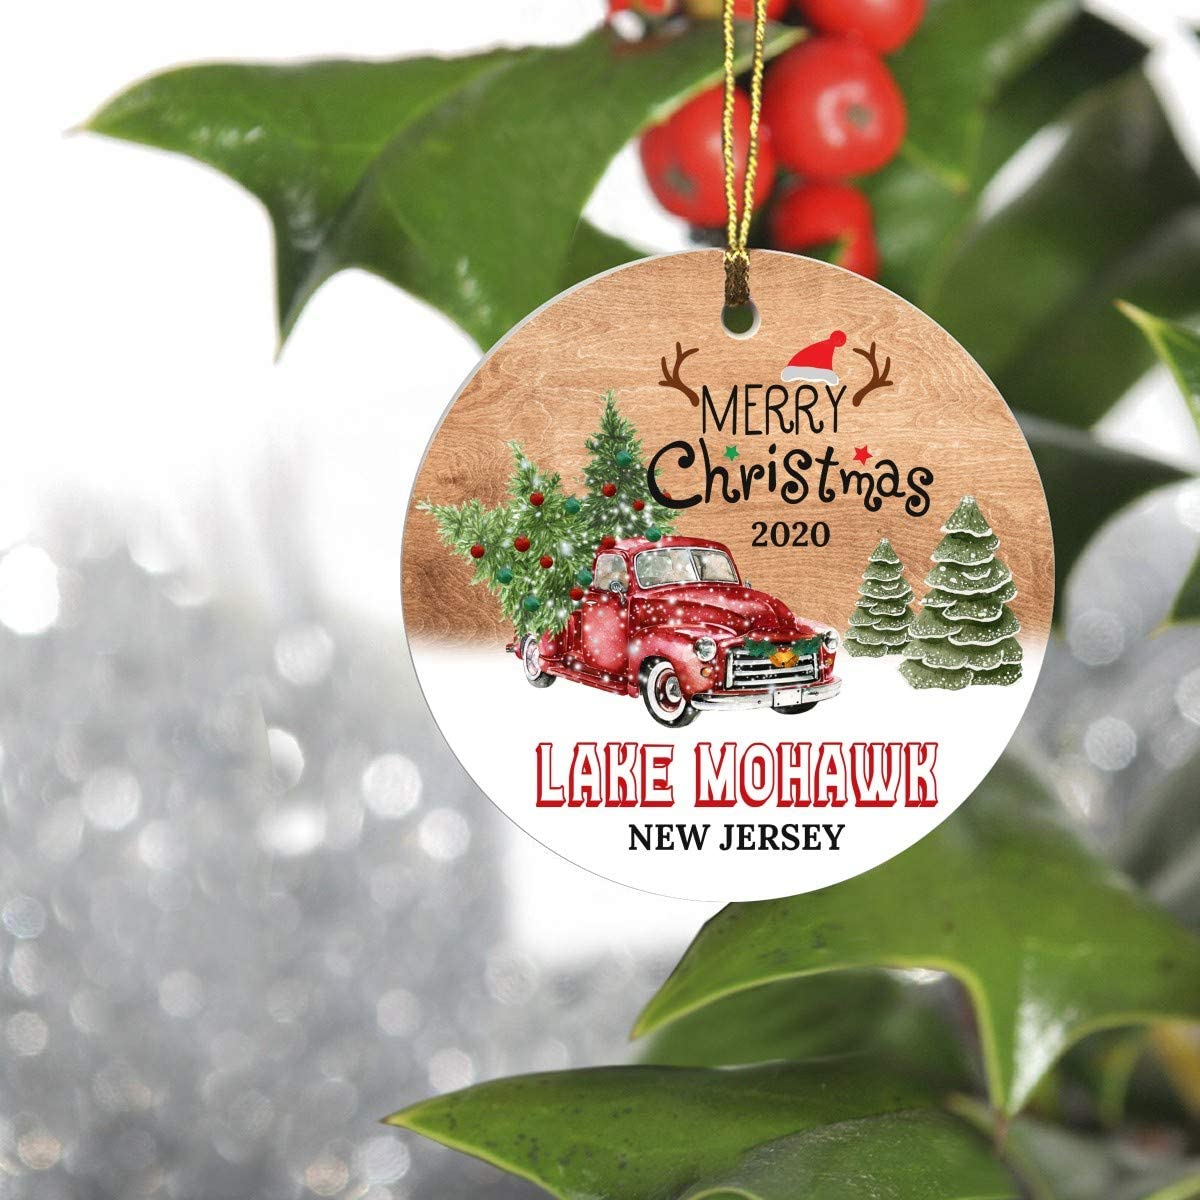 """Merry Christmas Tree Decorations Ornaments 2020 - Ornament Hometown Lake Mohawk New Jersey NJ State - Keepsake Gift Ideas Funny Ornament 3"""" for Family, Friend and Housewarming"""